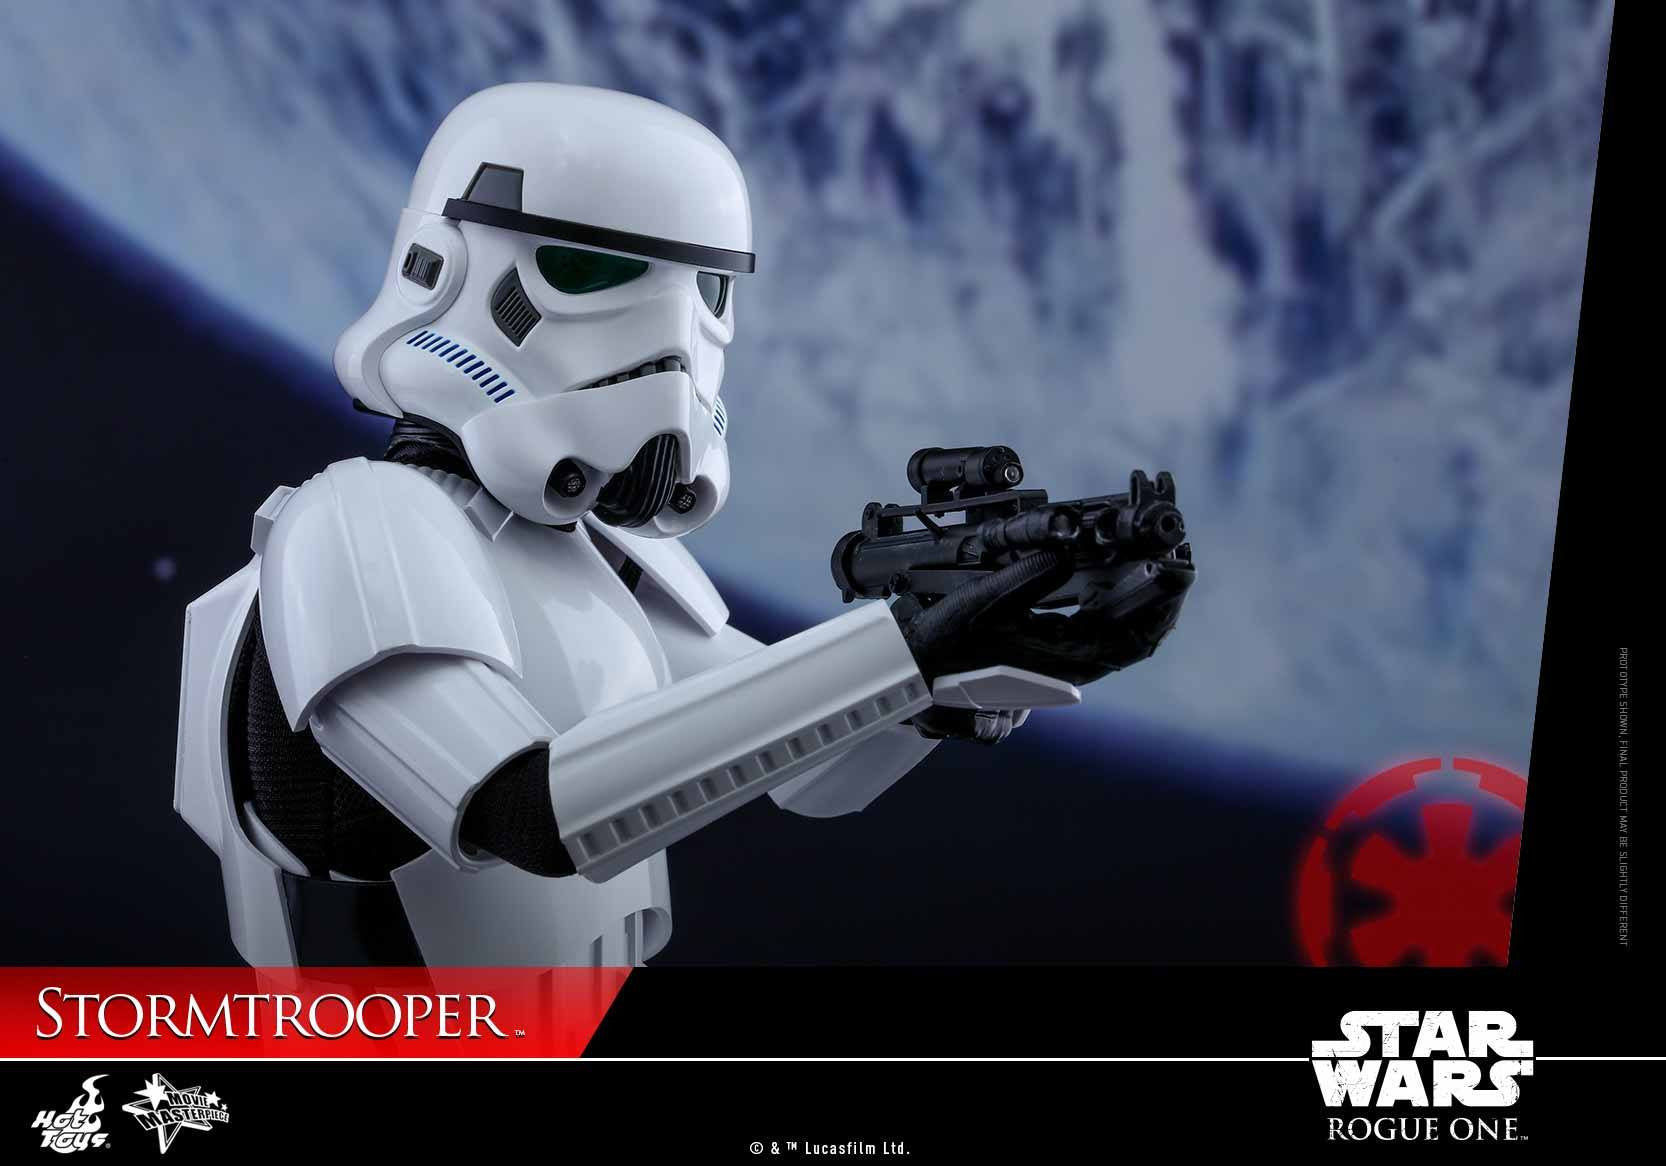 Hot Toys - MMS393 - Rogue One: A Star Wars Story - Stormtrooper - Marvelous Toys - 10